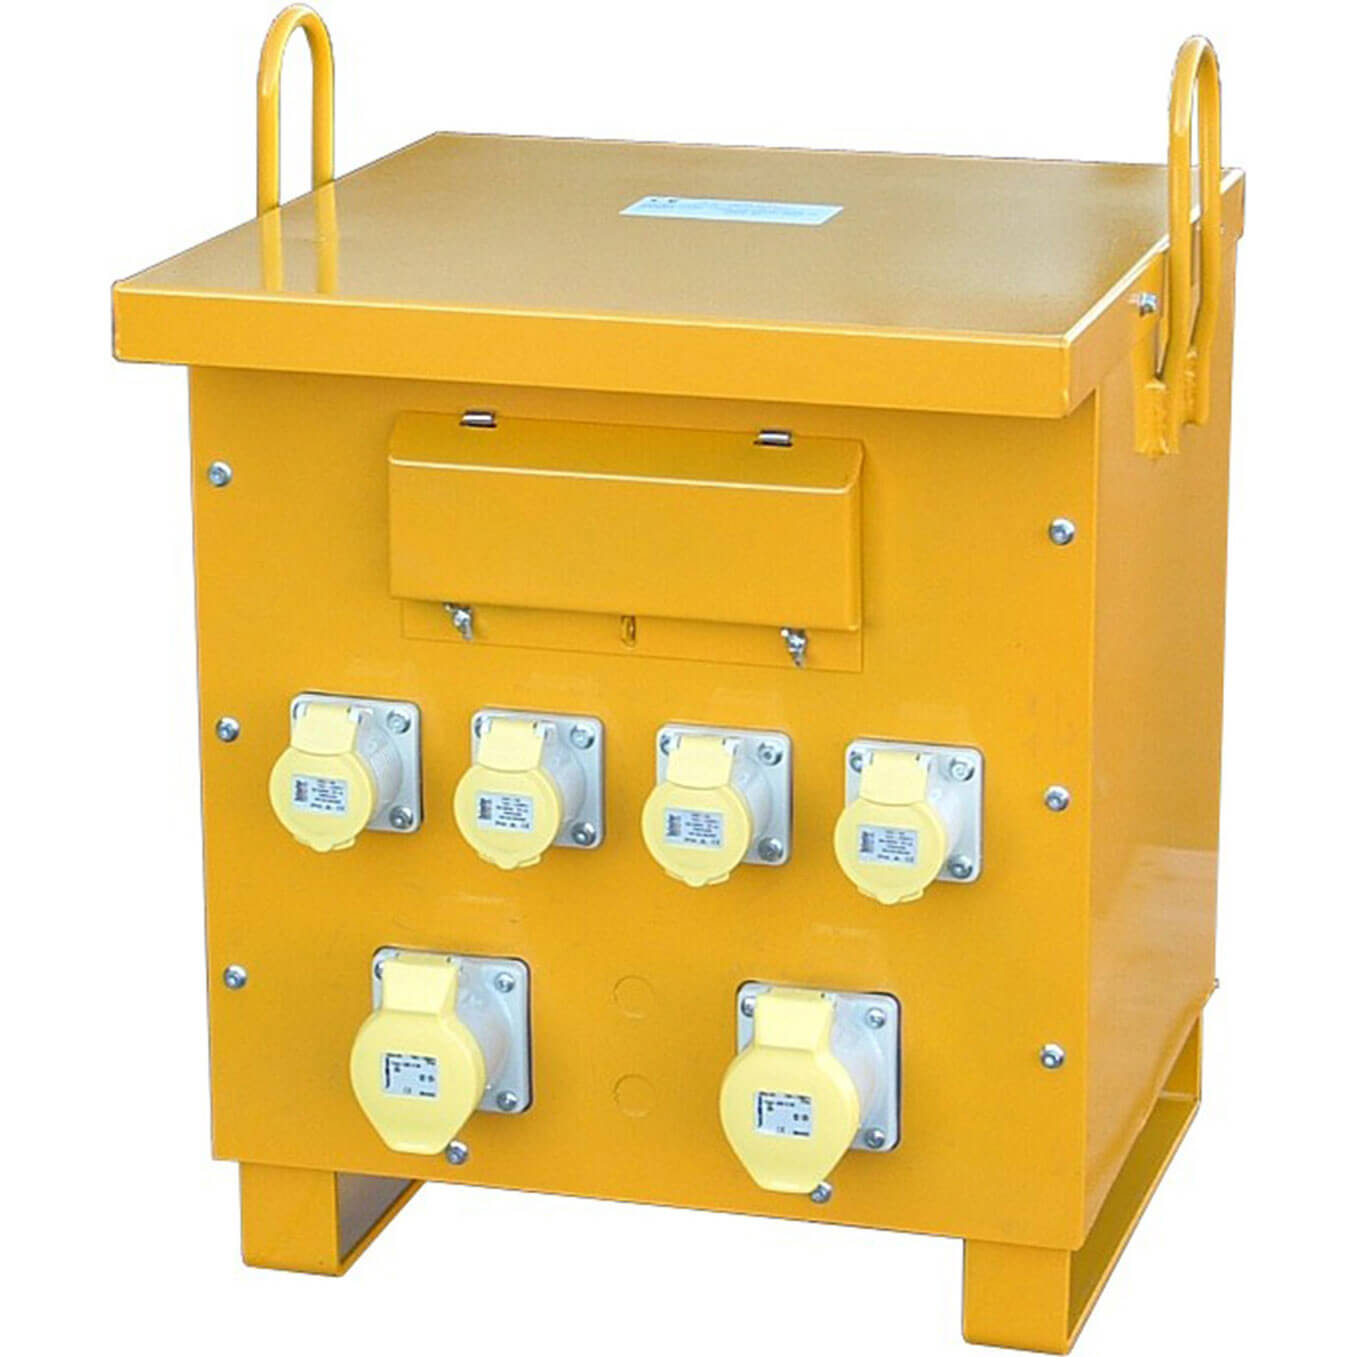 Carroll & Meynell 10Kva 415v (3 Phase) to 110v Step Down Site Power Tool Transformer with 6 16amp Sockets